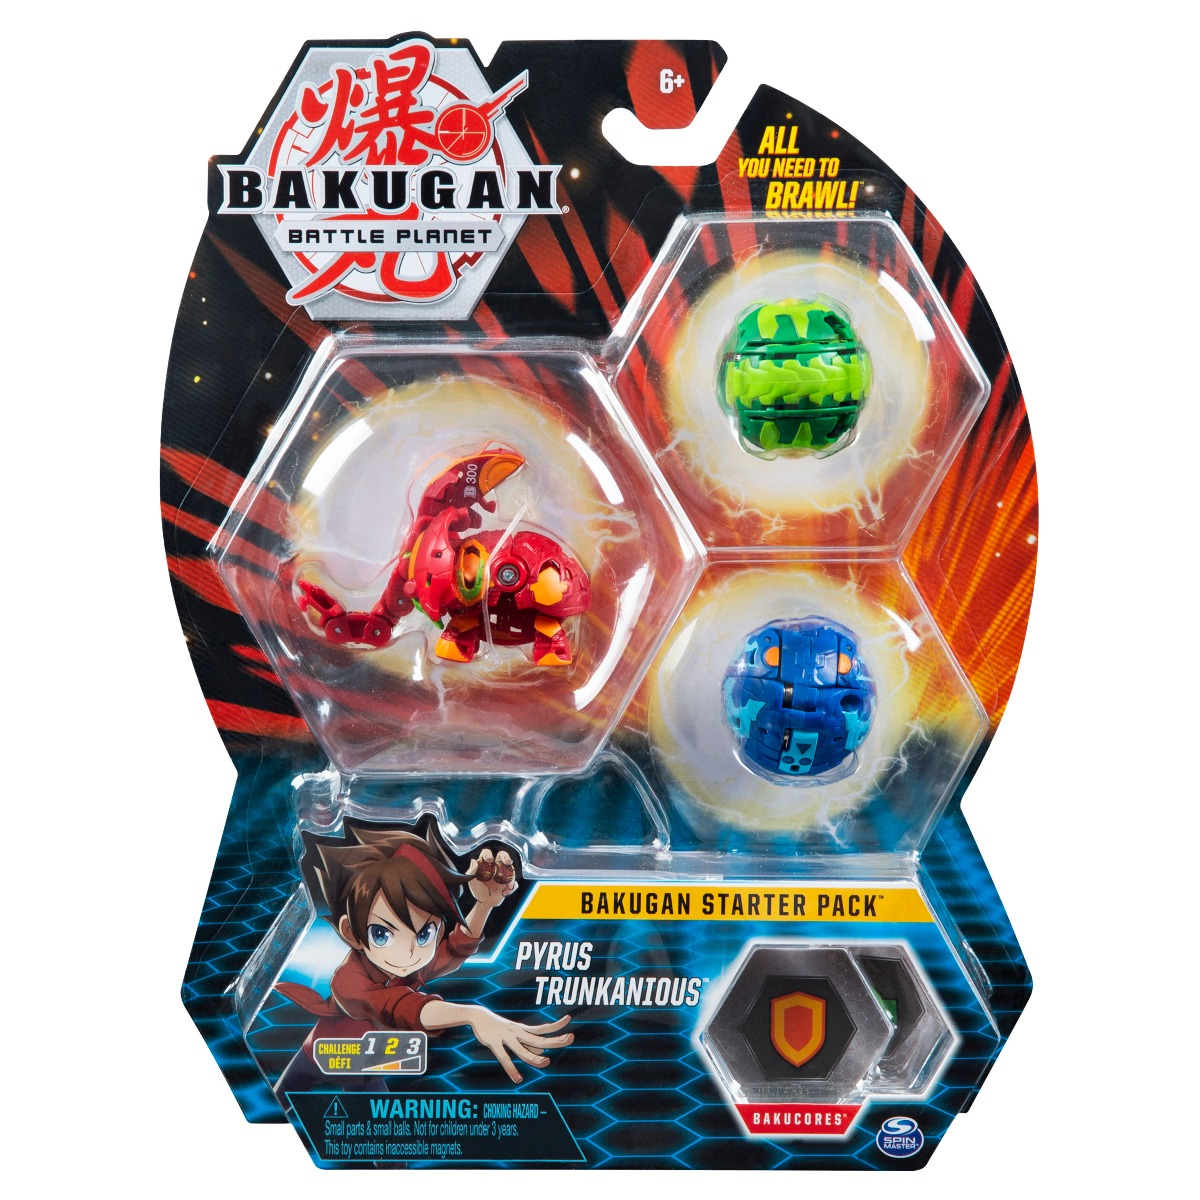 Set Bakugan Battle Planet Starter Pack, Pyrus Trunkanious, 20119857